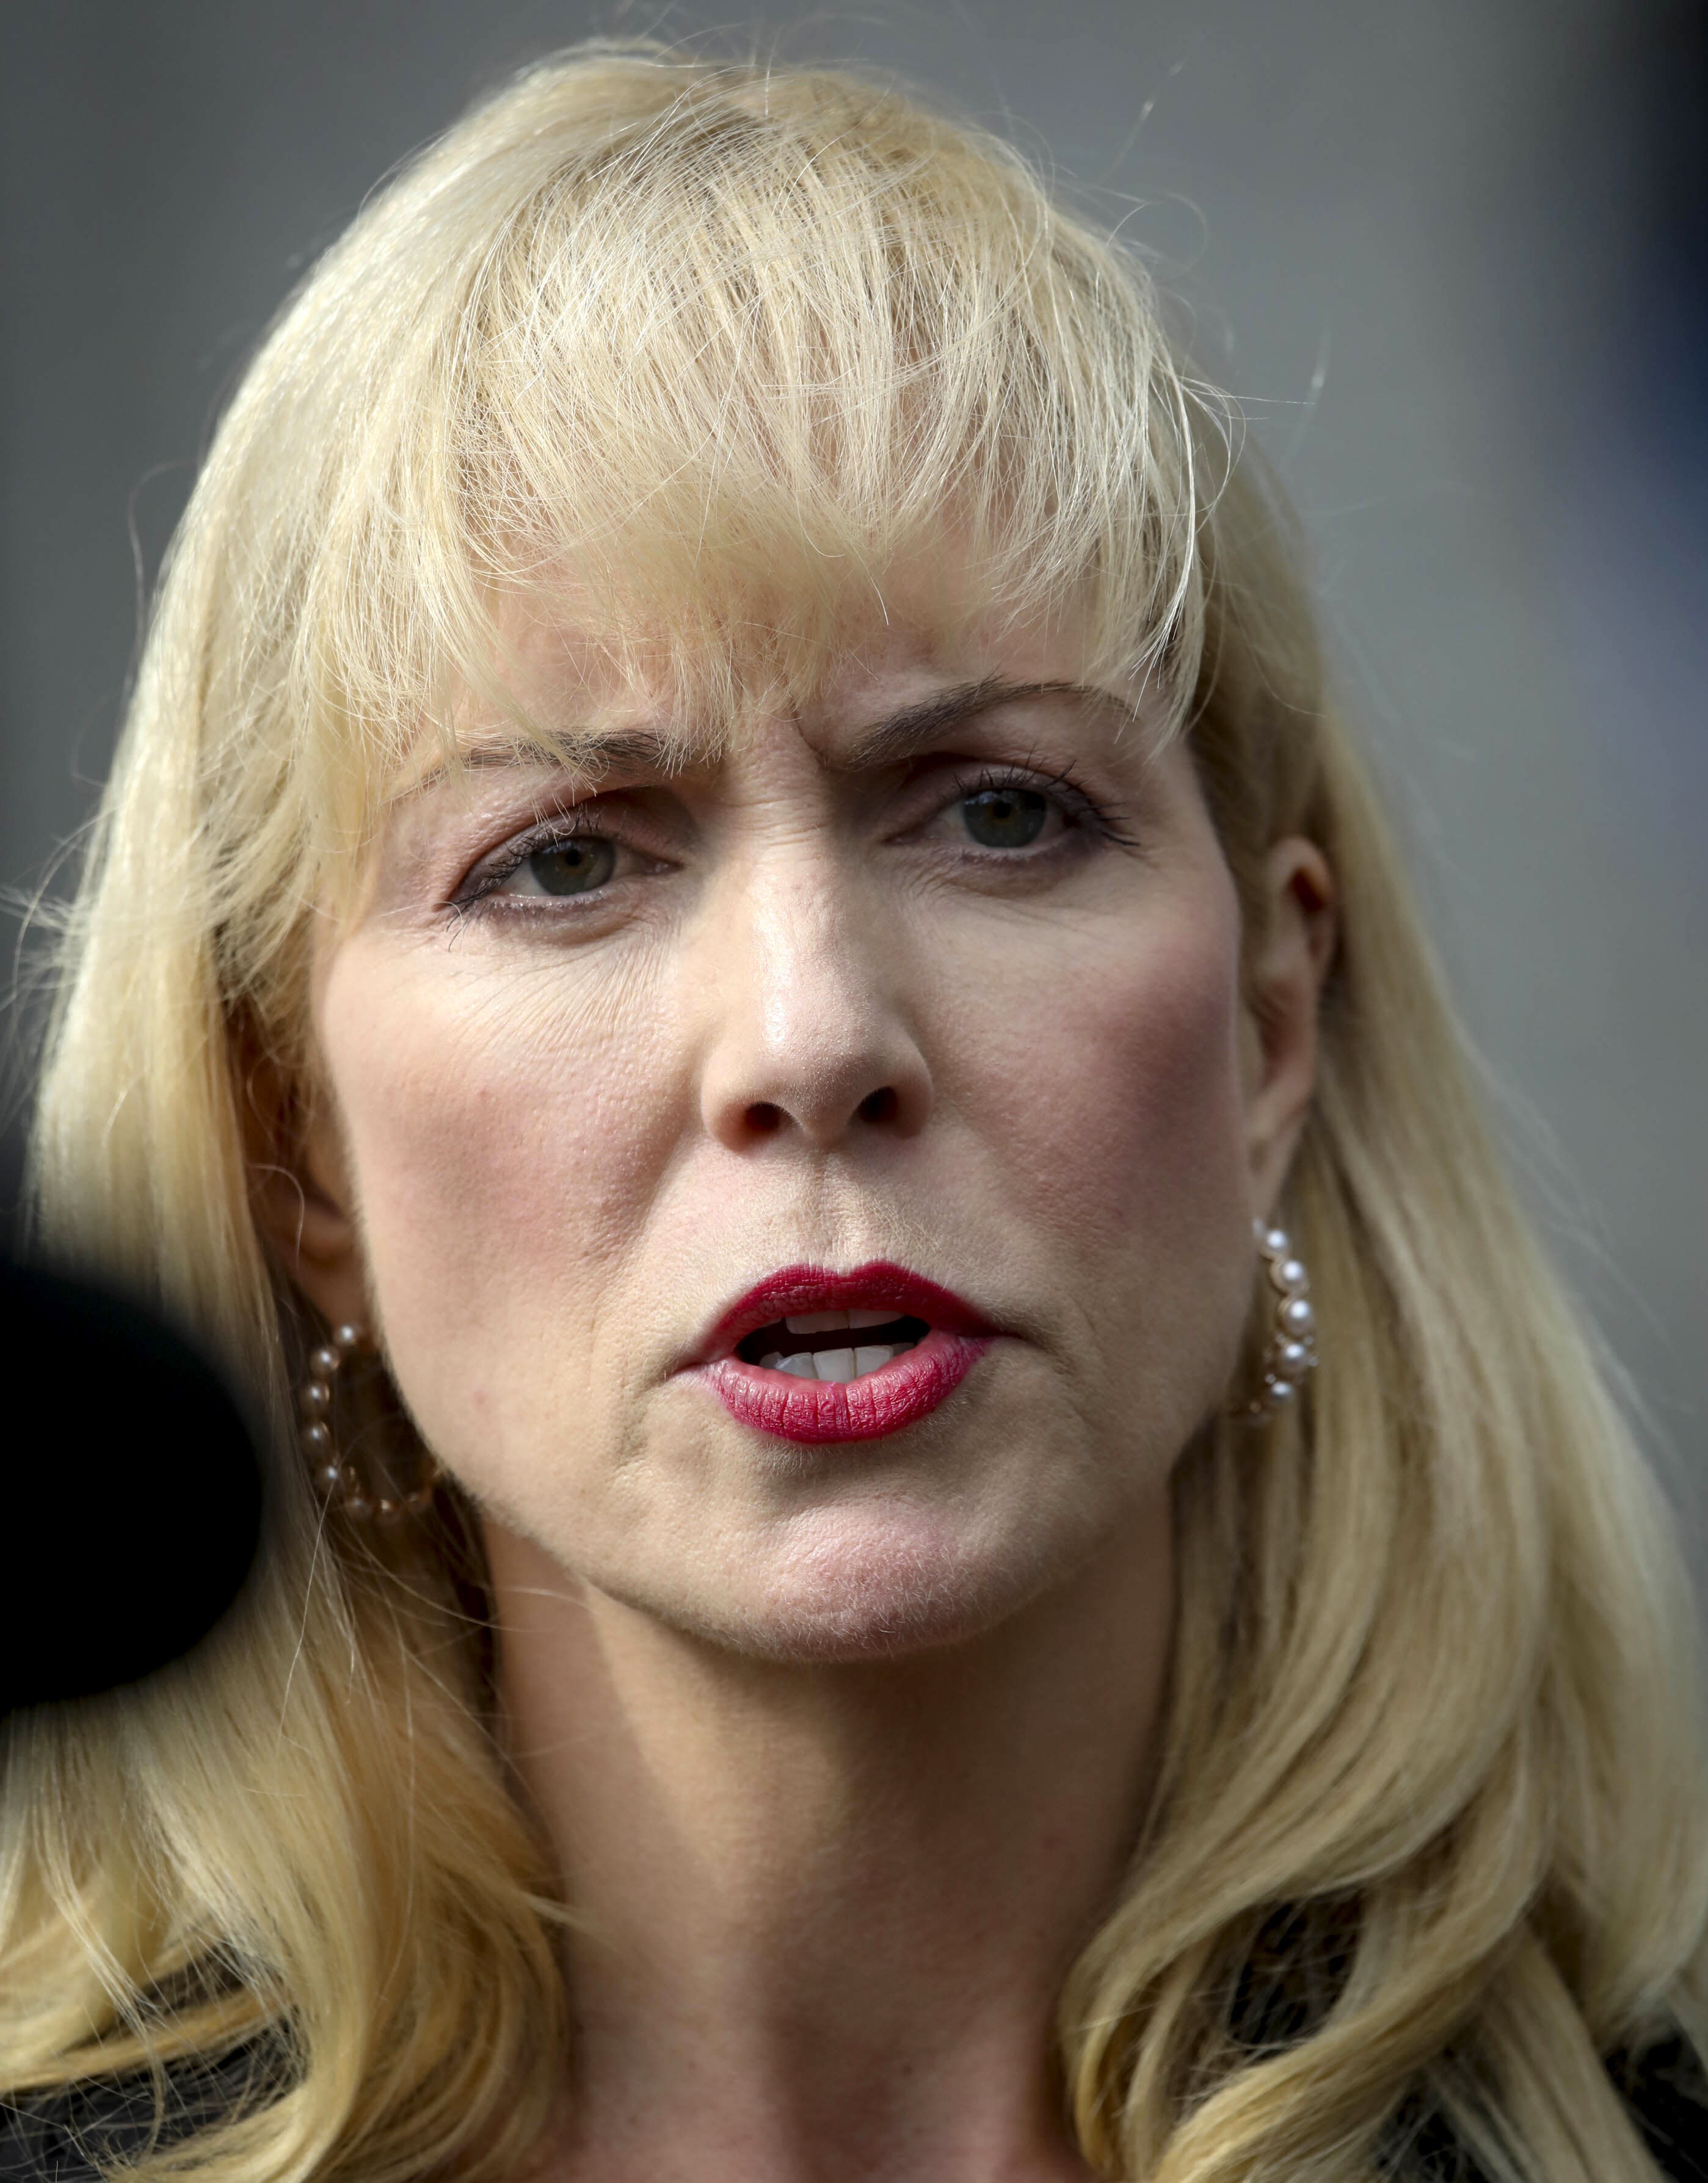 Sigrid McCawley, attorney for alleged sexual abuse victims of financier Jeffrey Epstein who committed suicide while awaiting trial, addresses media after a hearing in Manhattan Federal Court to discuss plans for unsealing more court records for a civil case against Epstein, Wednesday Sept. 4, 2019, in New York. (AP Photo/Bebeto Matthews)